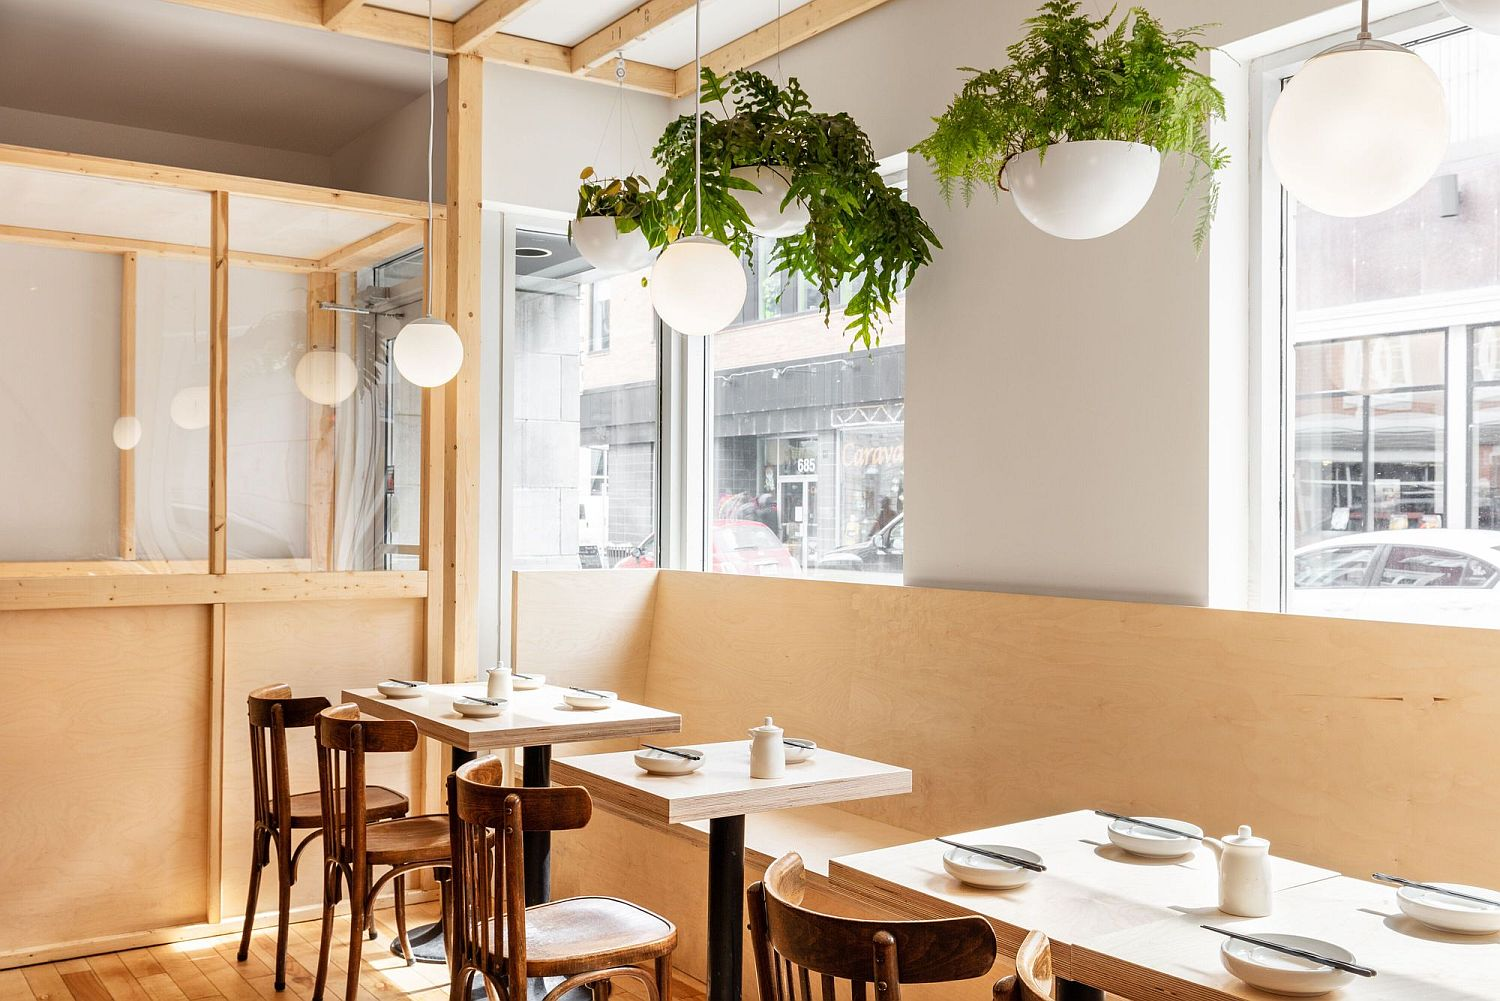 Large-windows-bring-in-ample-light-illuminating-the-diner